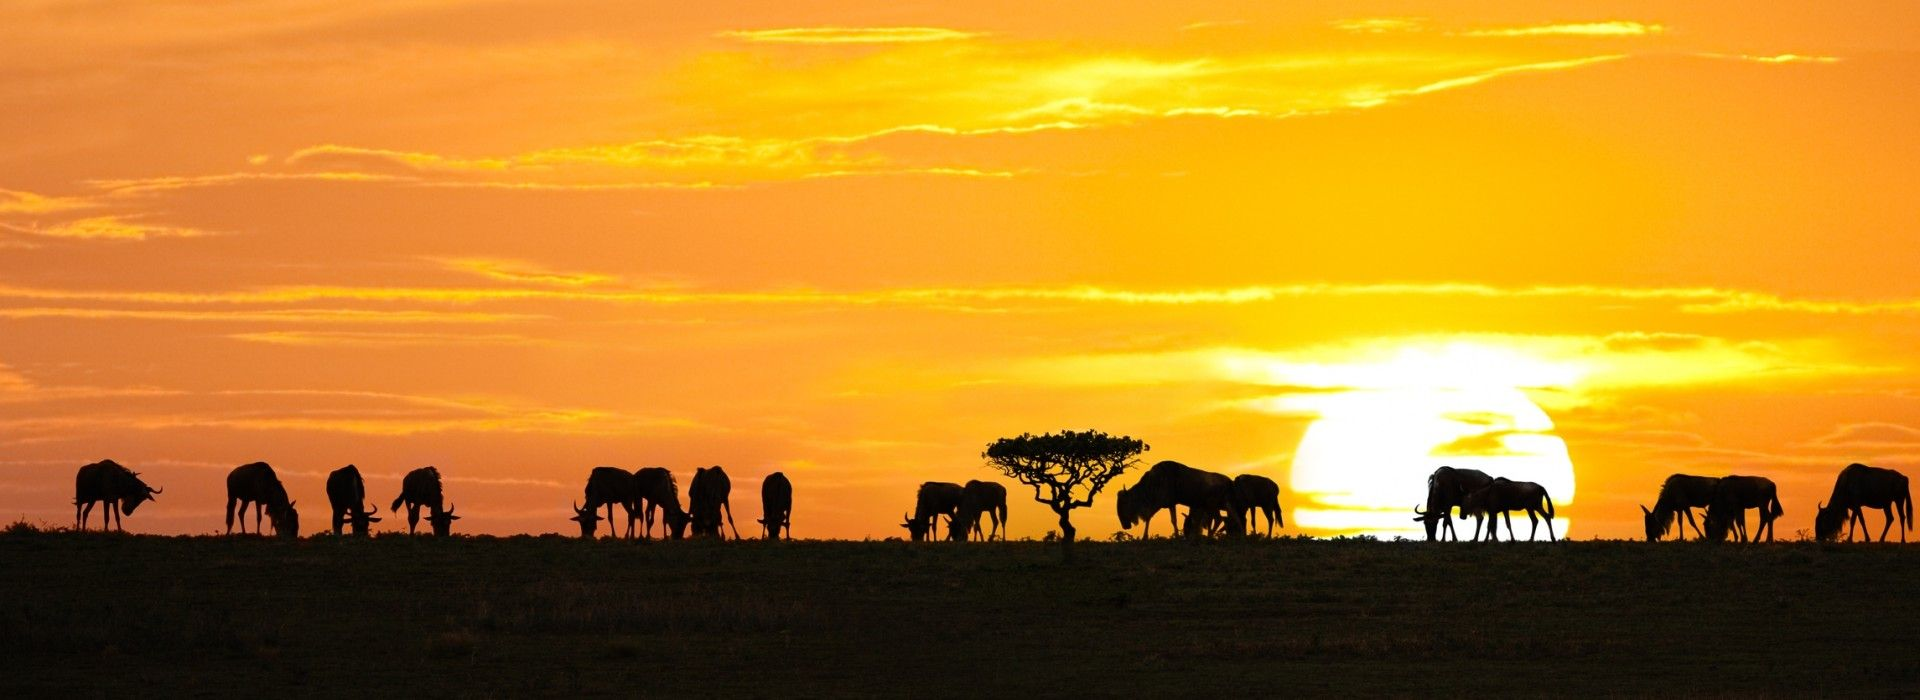 Natural landmarks sightseeing Tours in Tanzania